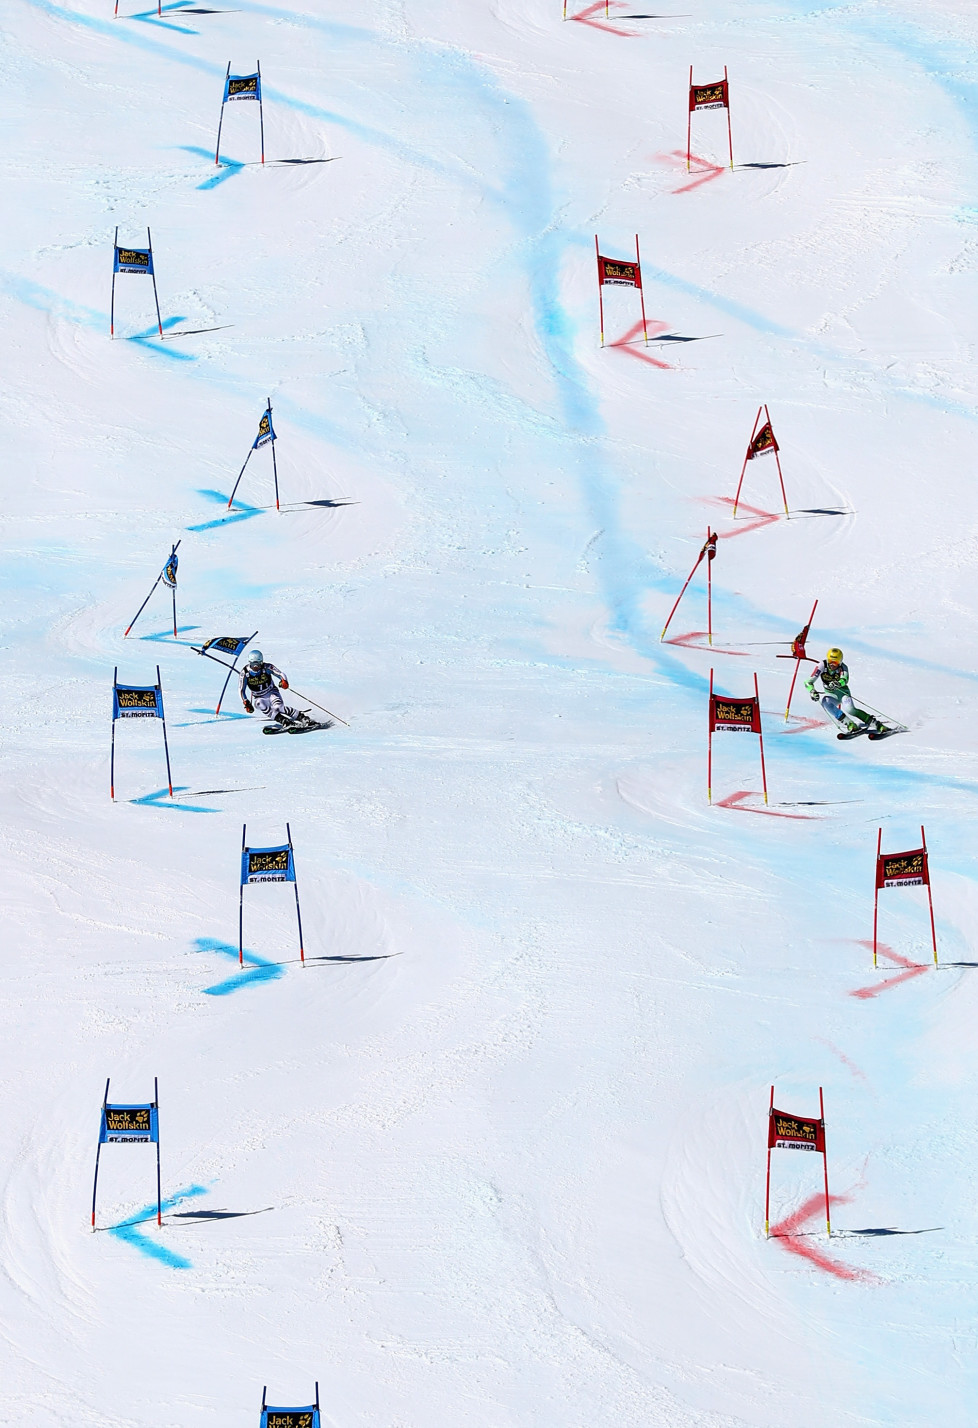 ST MORITZ, SWITZERLAND - MARCH 18: Germany and Slovenia compete during the Audi FIS Alpine Ski World Cup Finals Men's and Women's Team Event on March 18, 2016 in St Moritz, Switzerland. (Photo by Clive Rose/Getty Images)